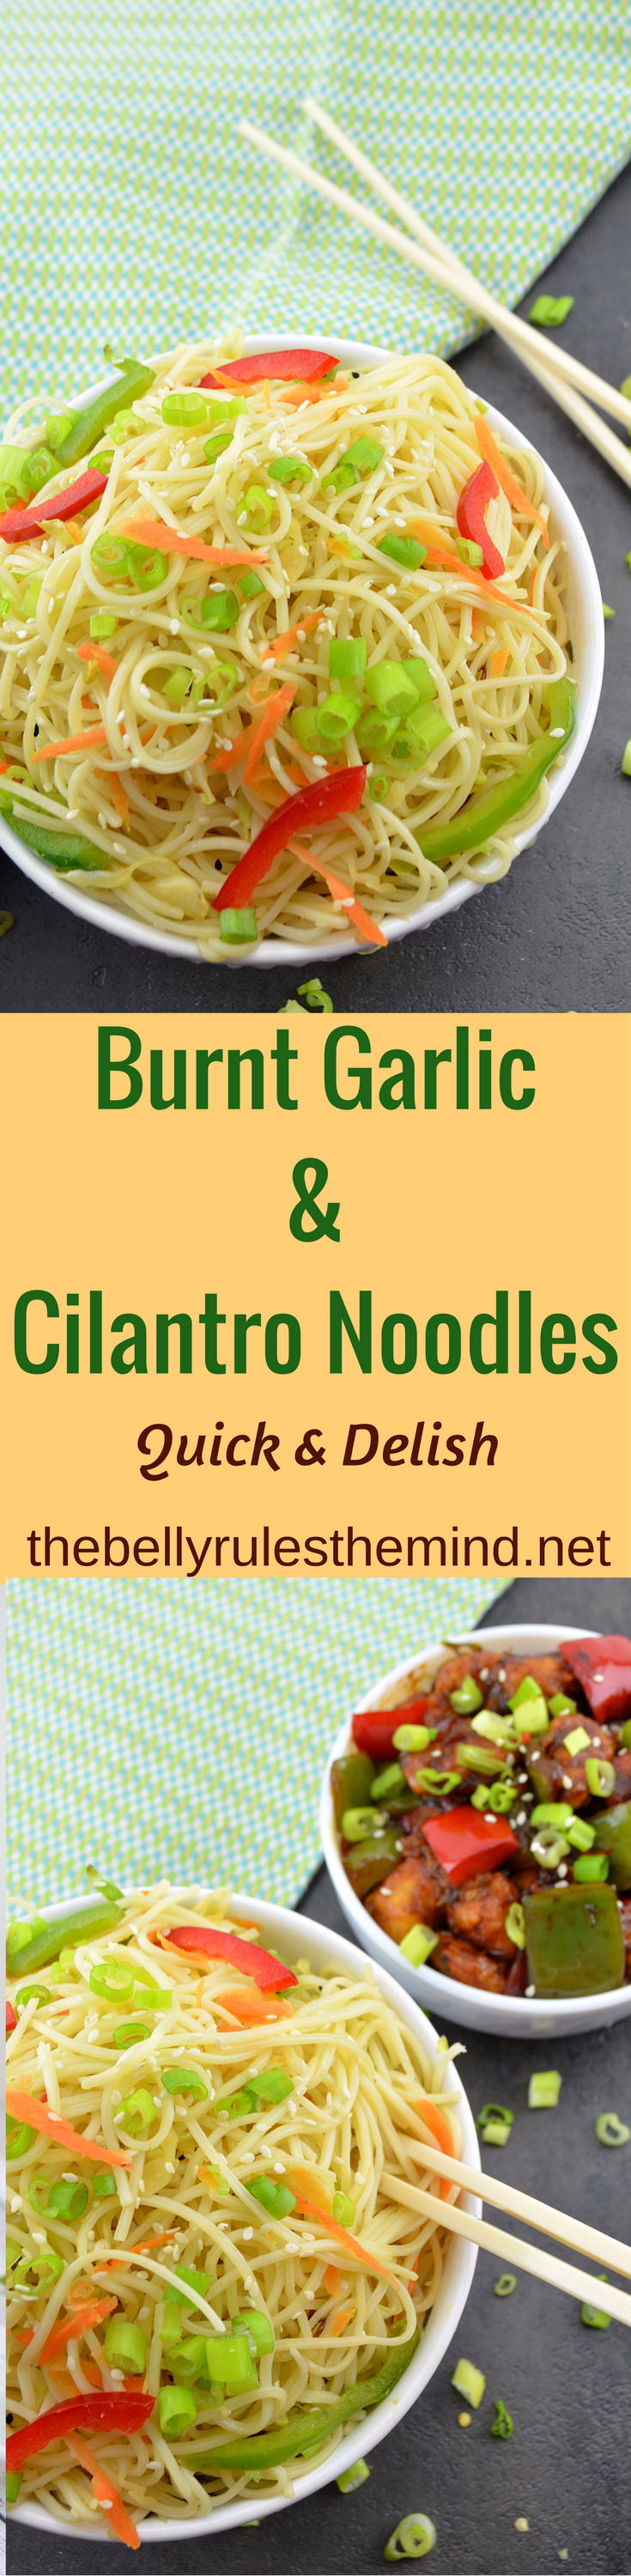 Burnt Garlic & Cilantro Noodles